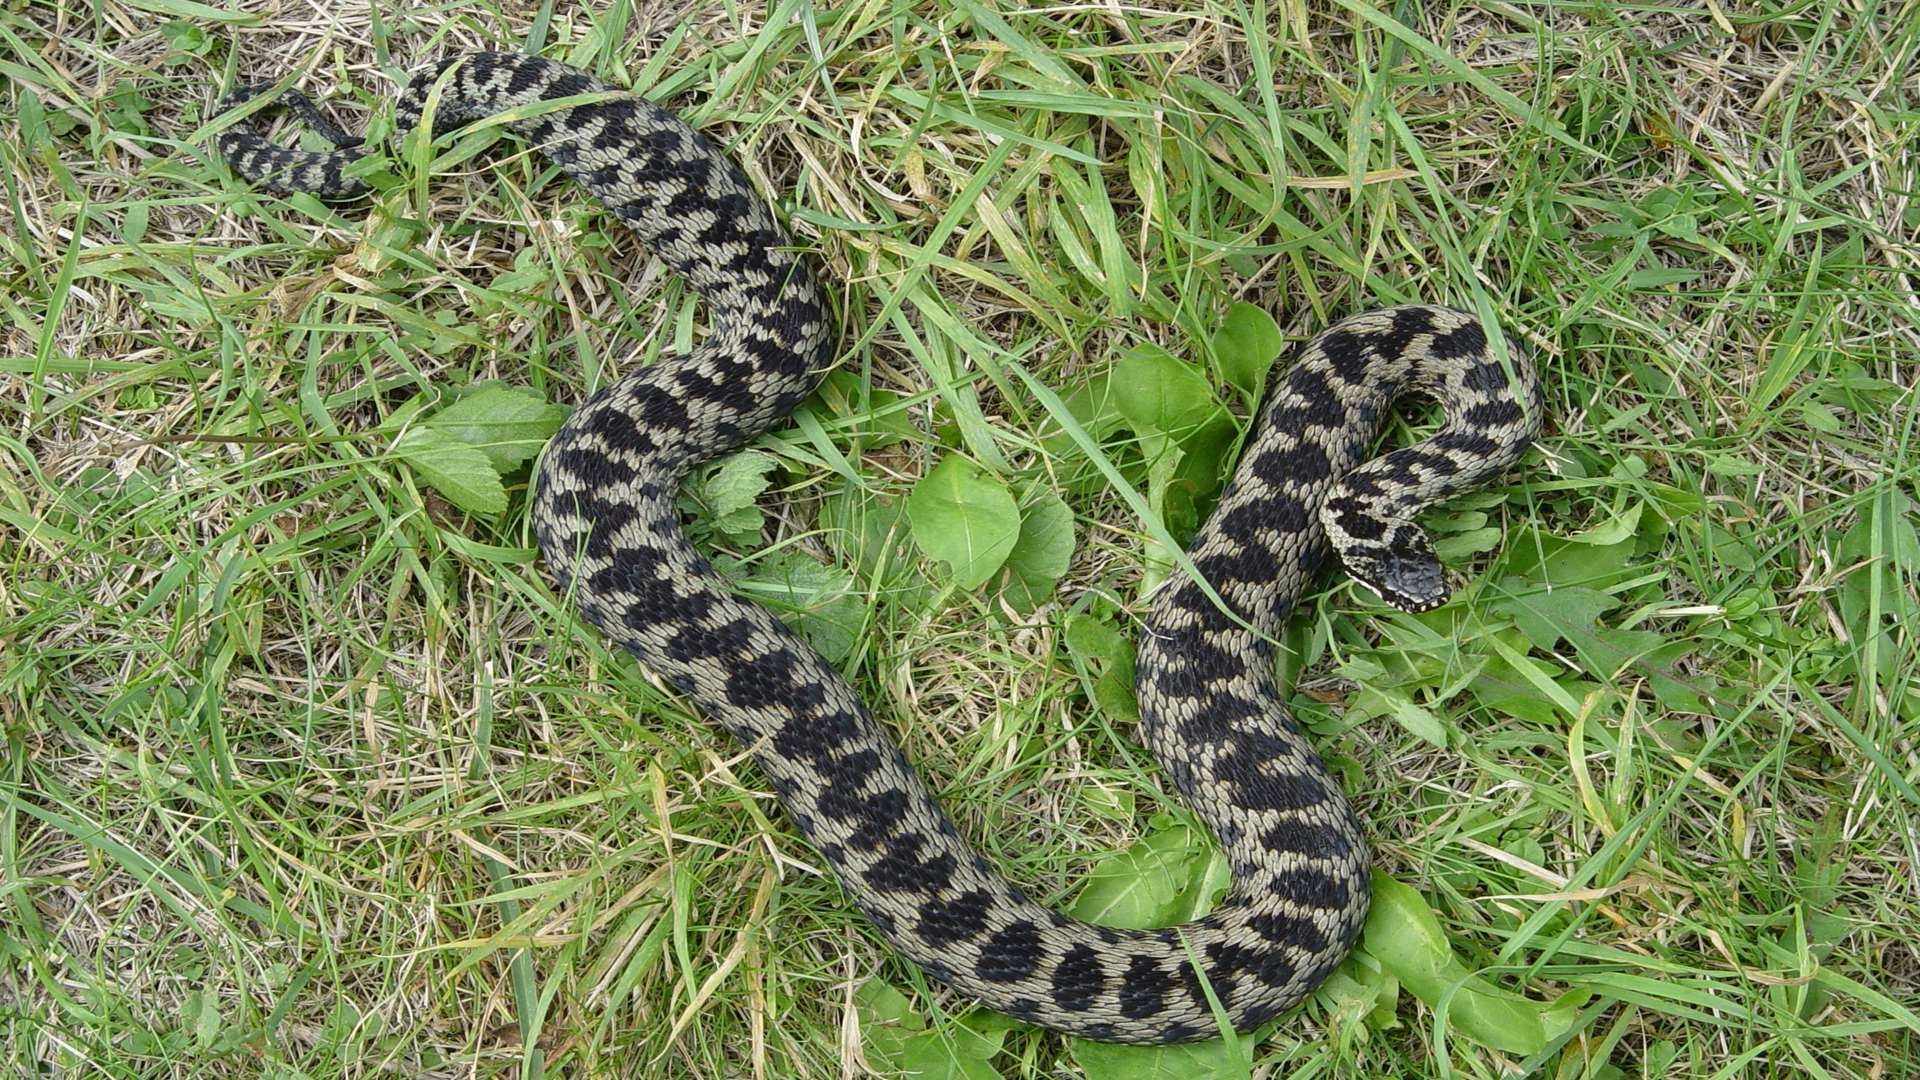 Adders can be found in various parts of the county. Stock picture